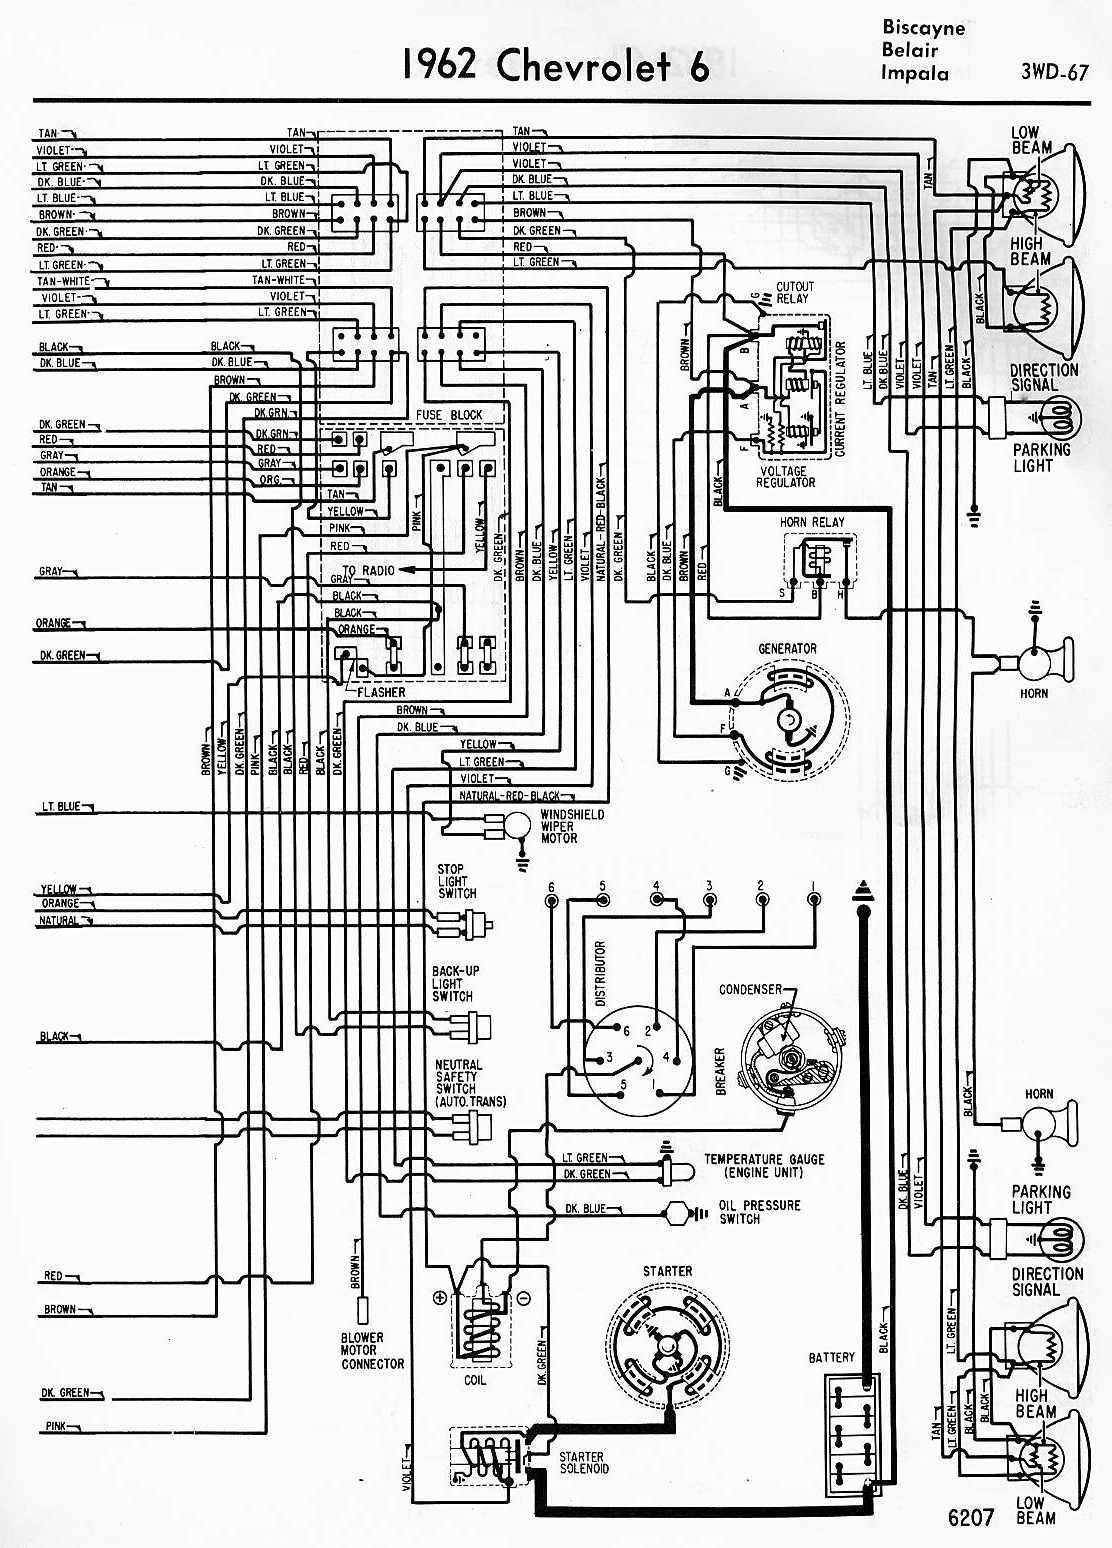 2011 Chevy Suburban Wiring Diagram Library Kioti Tractor Ck25 Ignition Diagrams Electrical Of 1962 Chevrolet 6